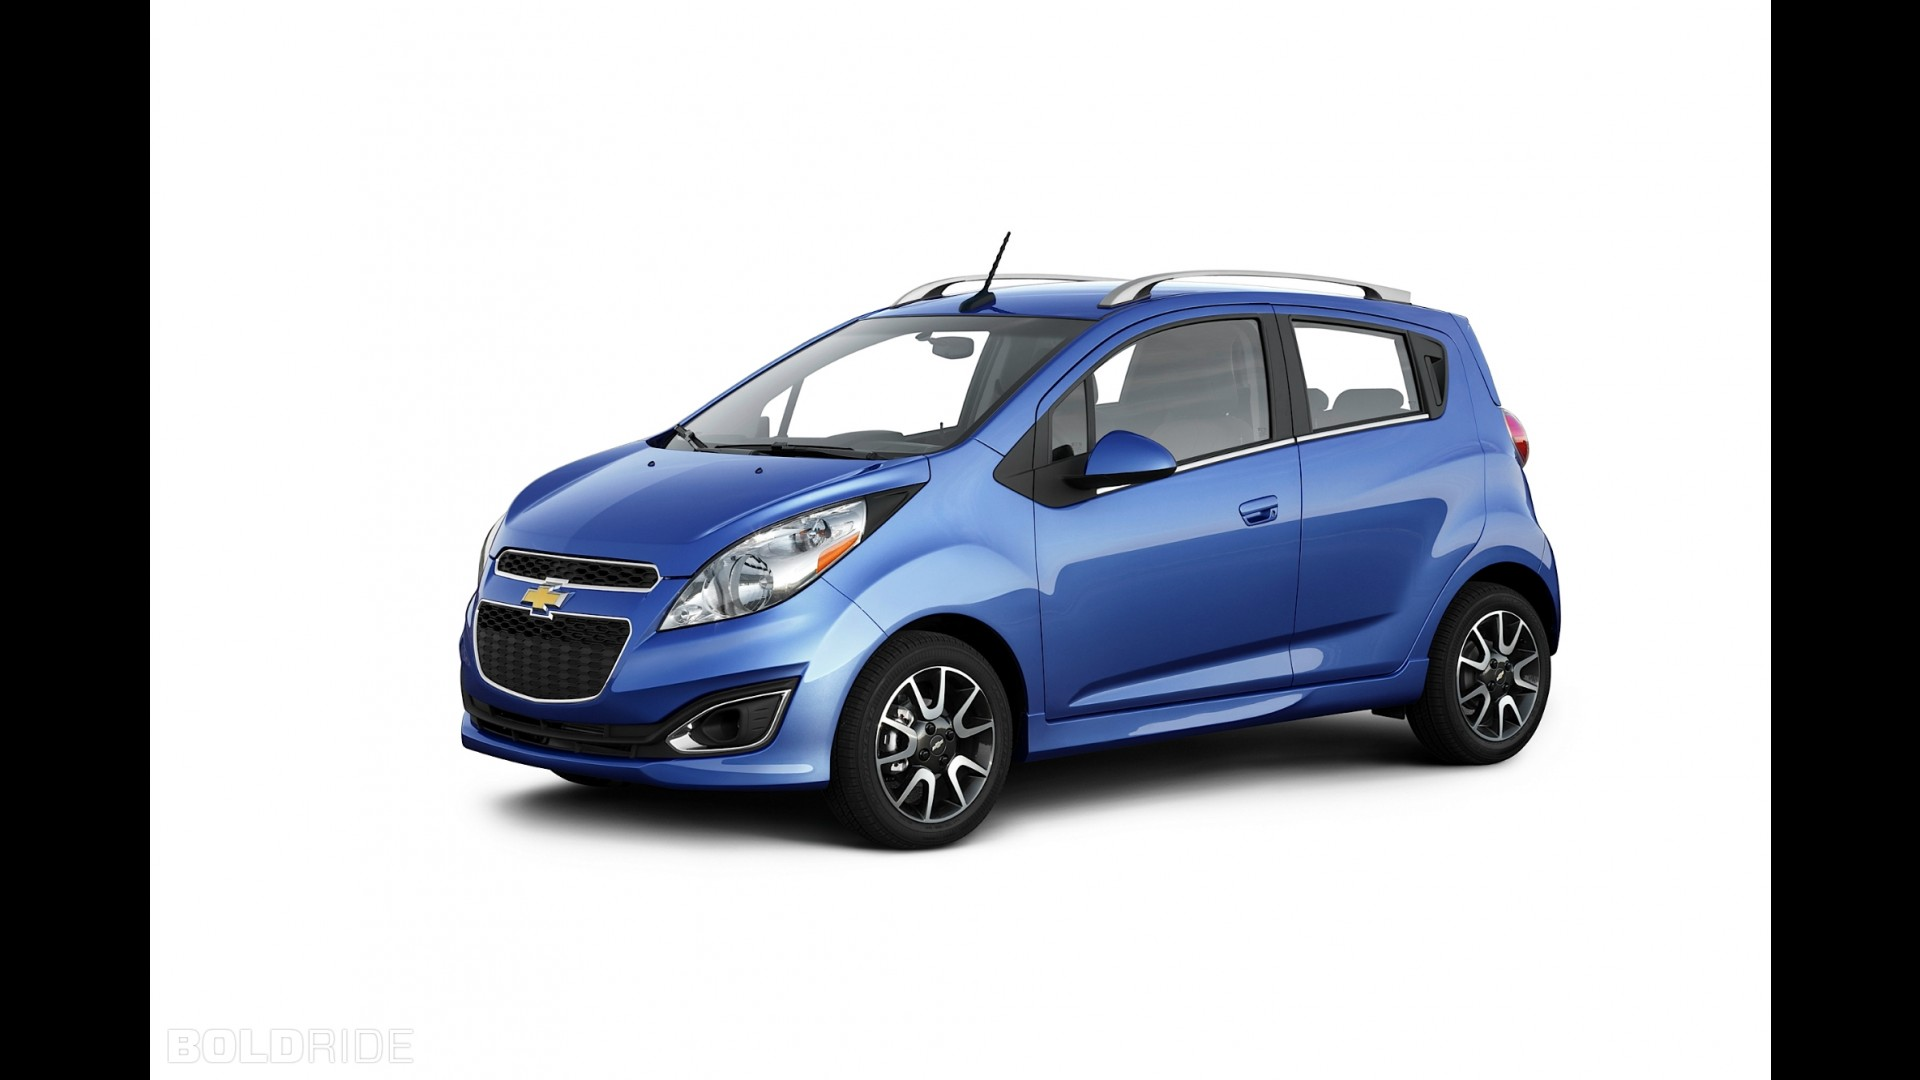 chevrolet spark. Black Bedroom Furniture Sets. Home Design Ideas